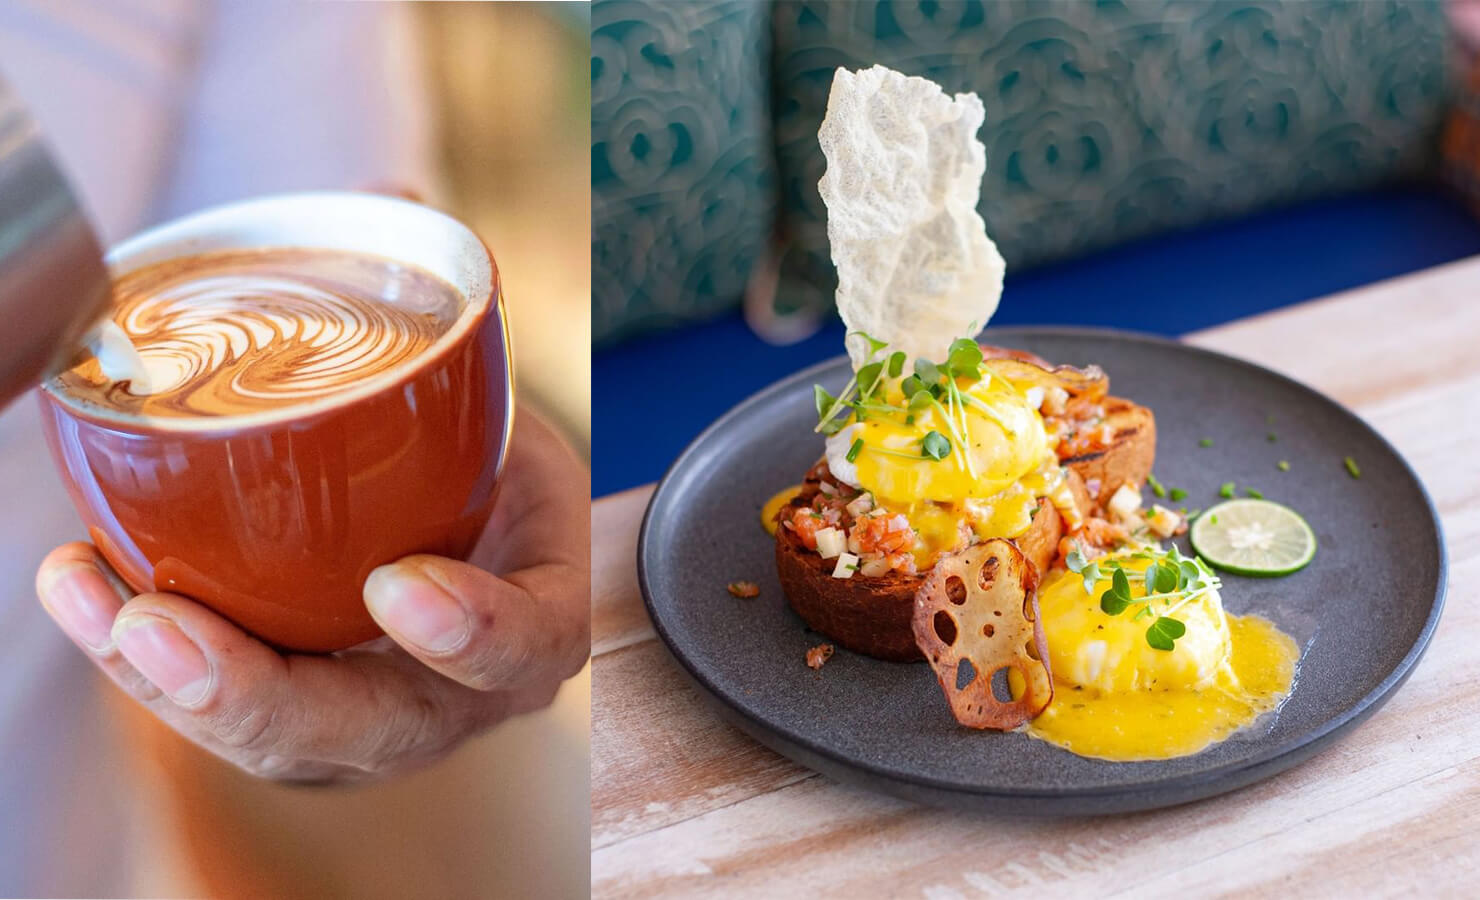 bloomthis-5-plant-flower-cafes-you-have-to-visit-10-lisettes-coffee-art-bestseller-menu